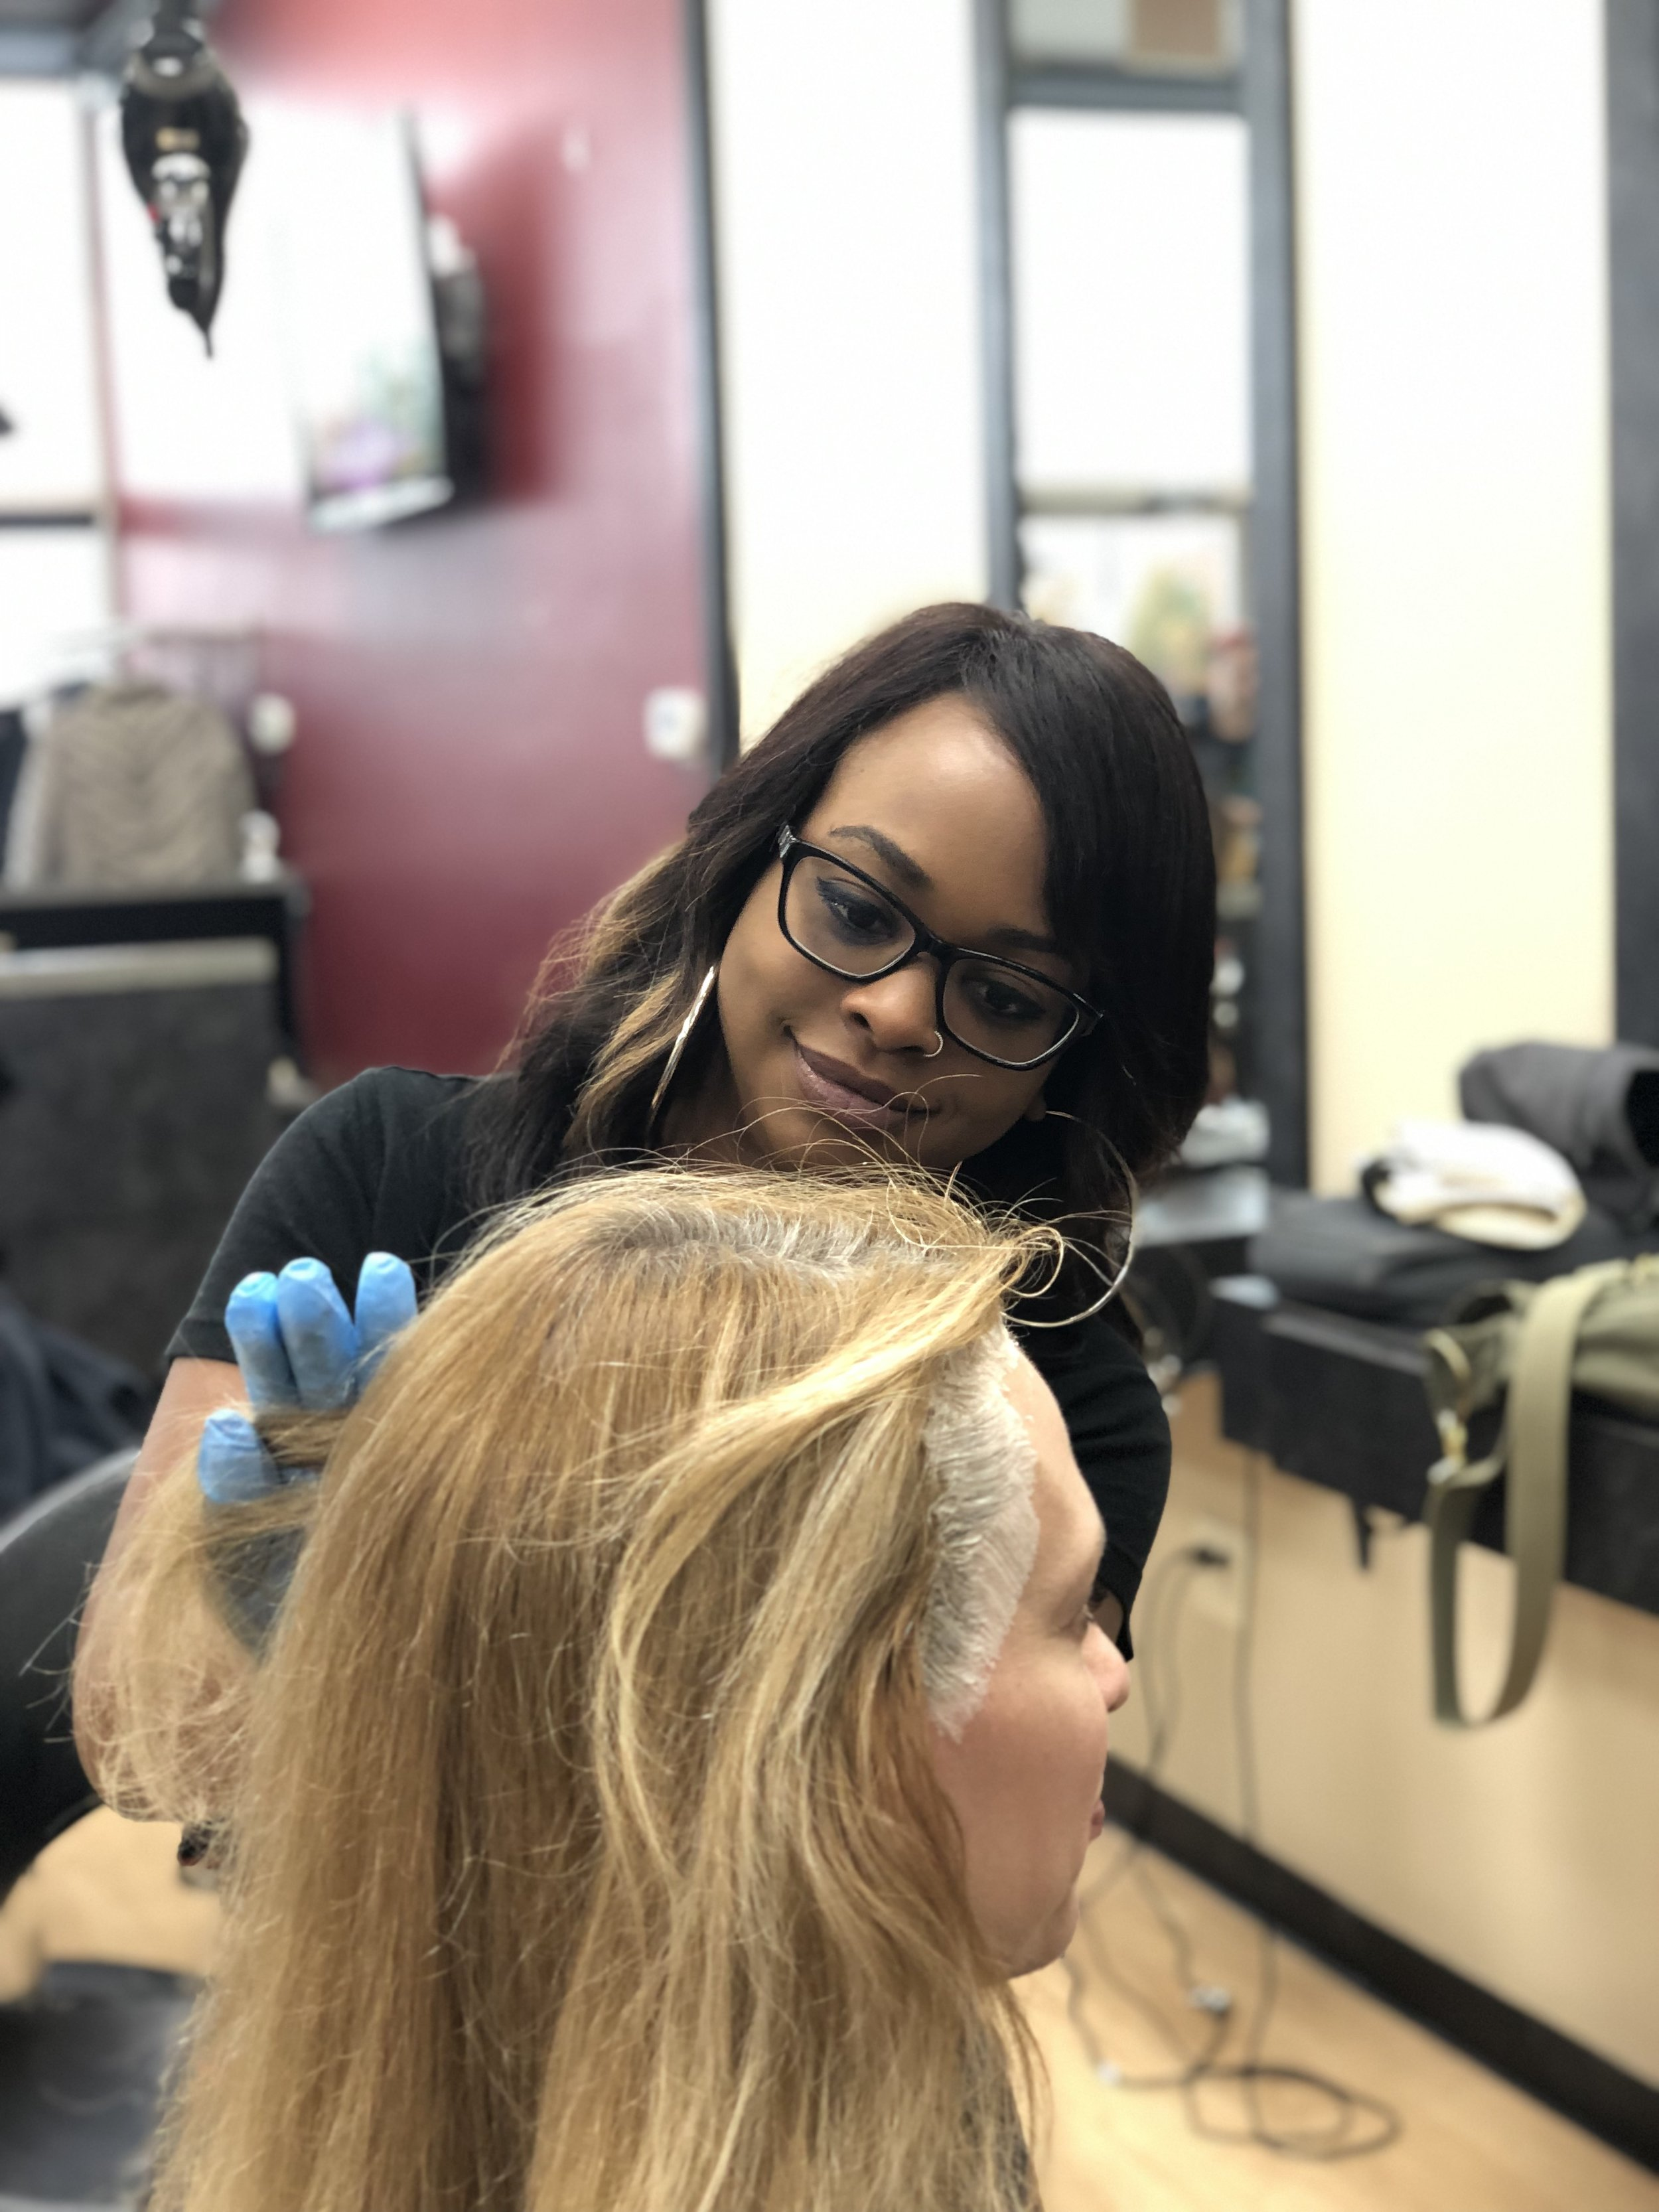 Create the new you today - Impressions matter. Whether it's for a job, a date, or school, your hair will be the first thing people notice about you. Start a new chapter by booking an appointment today.Request an Appointment Today ➝